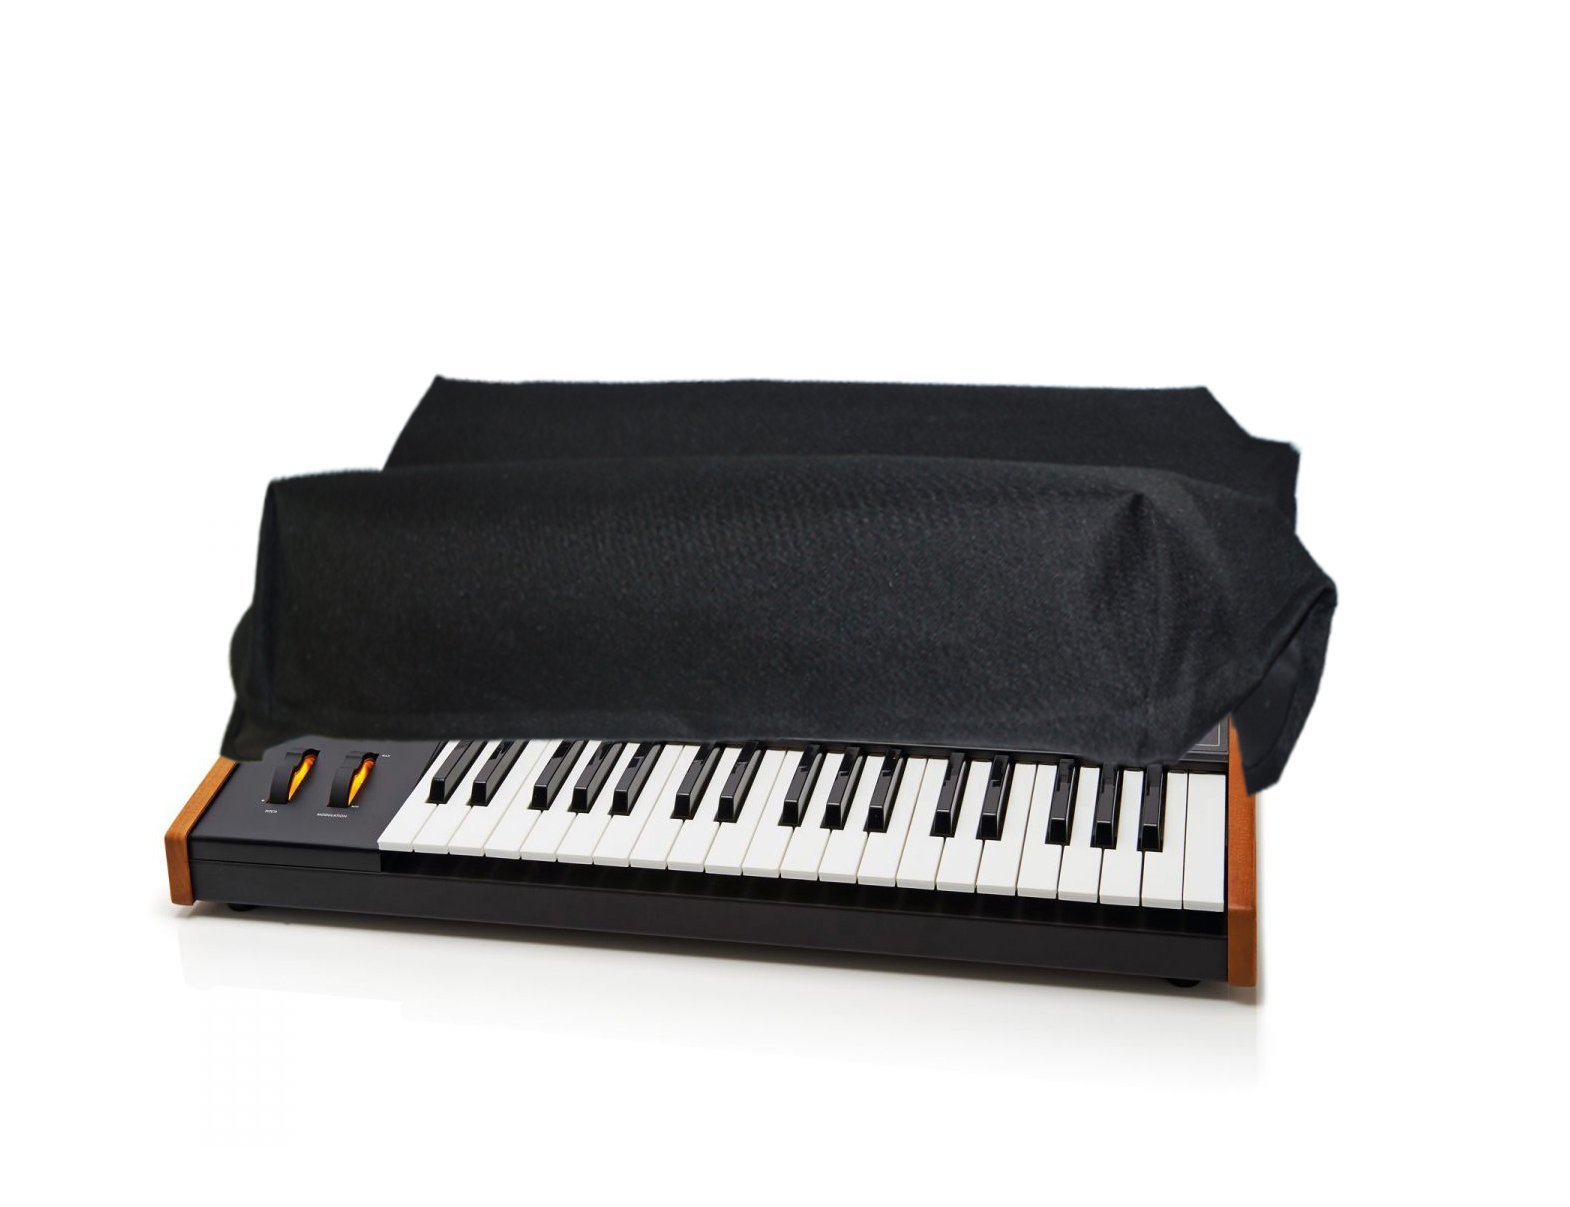 Dust Cover and Protector for MOOG SUB 37 / LITTLE PHATTY / Stage II Synthesizer Keyboard [Antistatic, Water Resistant, Premium Black Fabric, Heavy Duty] by DigitalDeckCovers